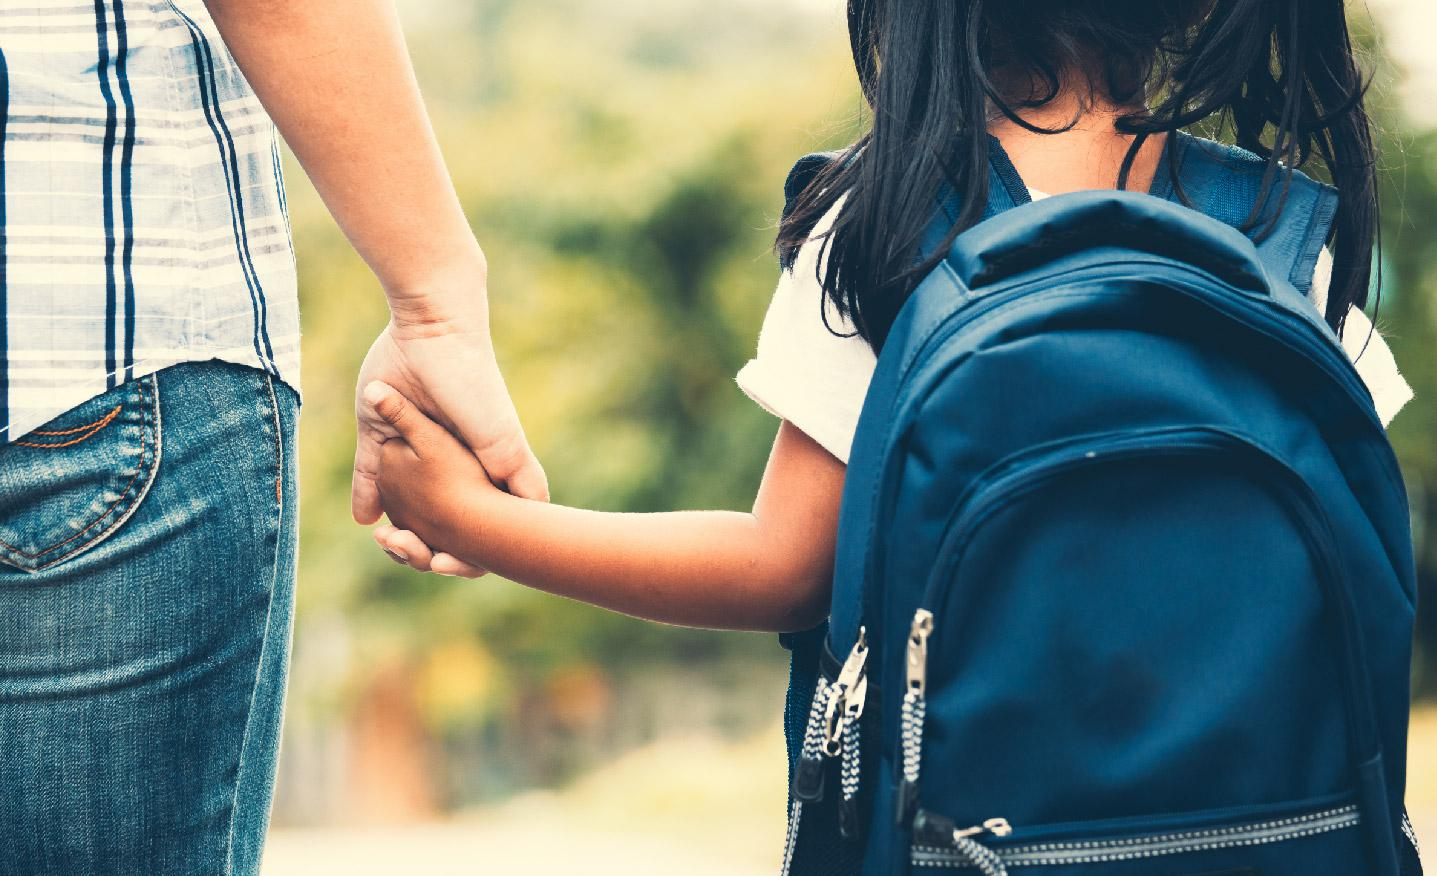 10 Safety Rules at School Every Child Should Follow